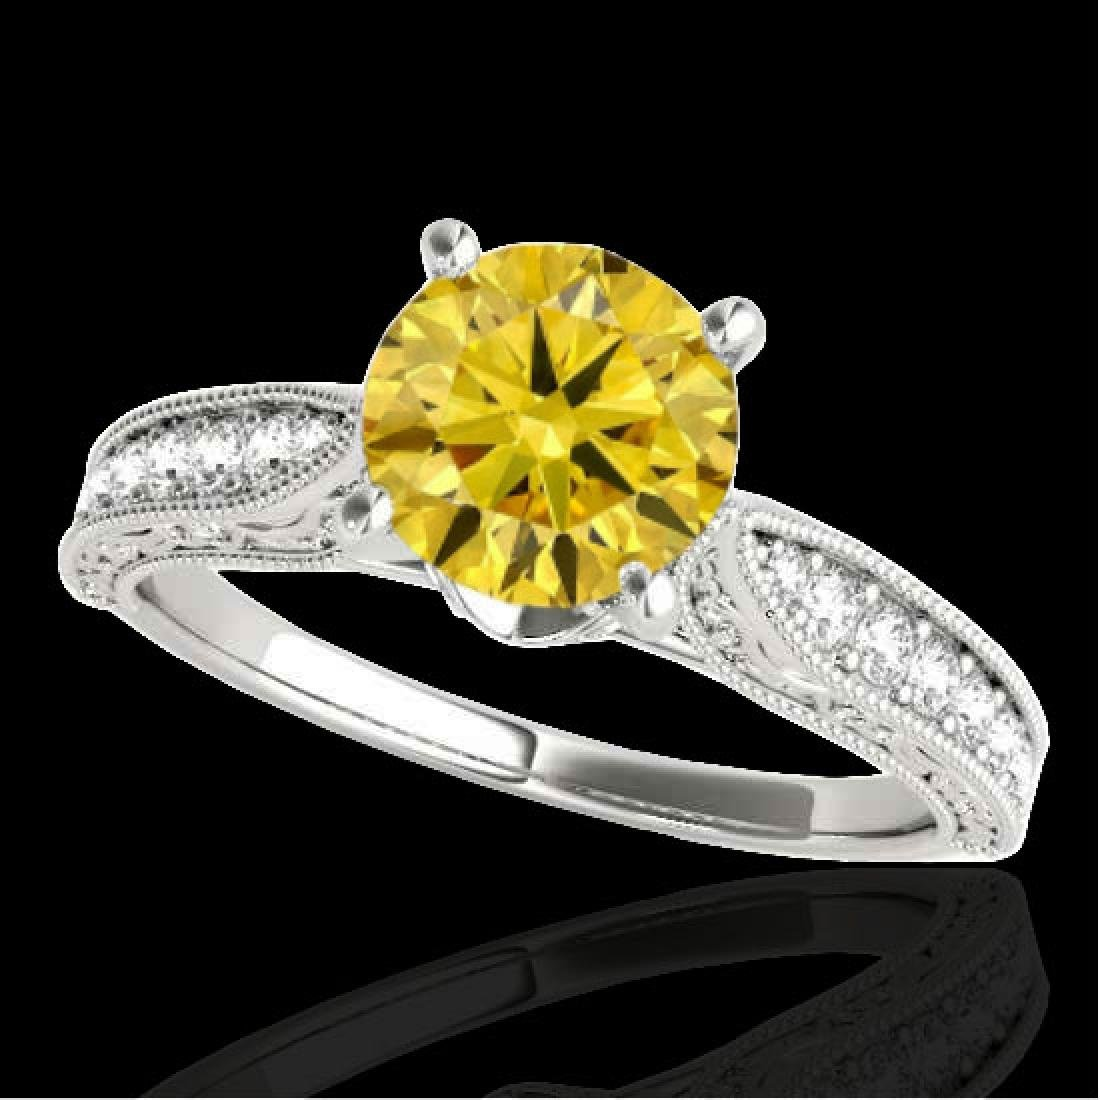 1.21 CTW Certified Si Intense Yellow Diamond Solitaire